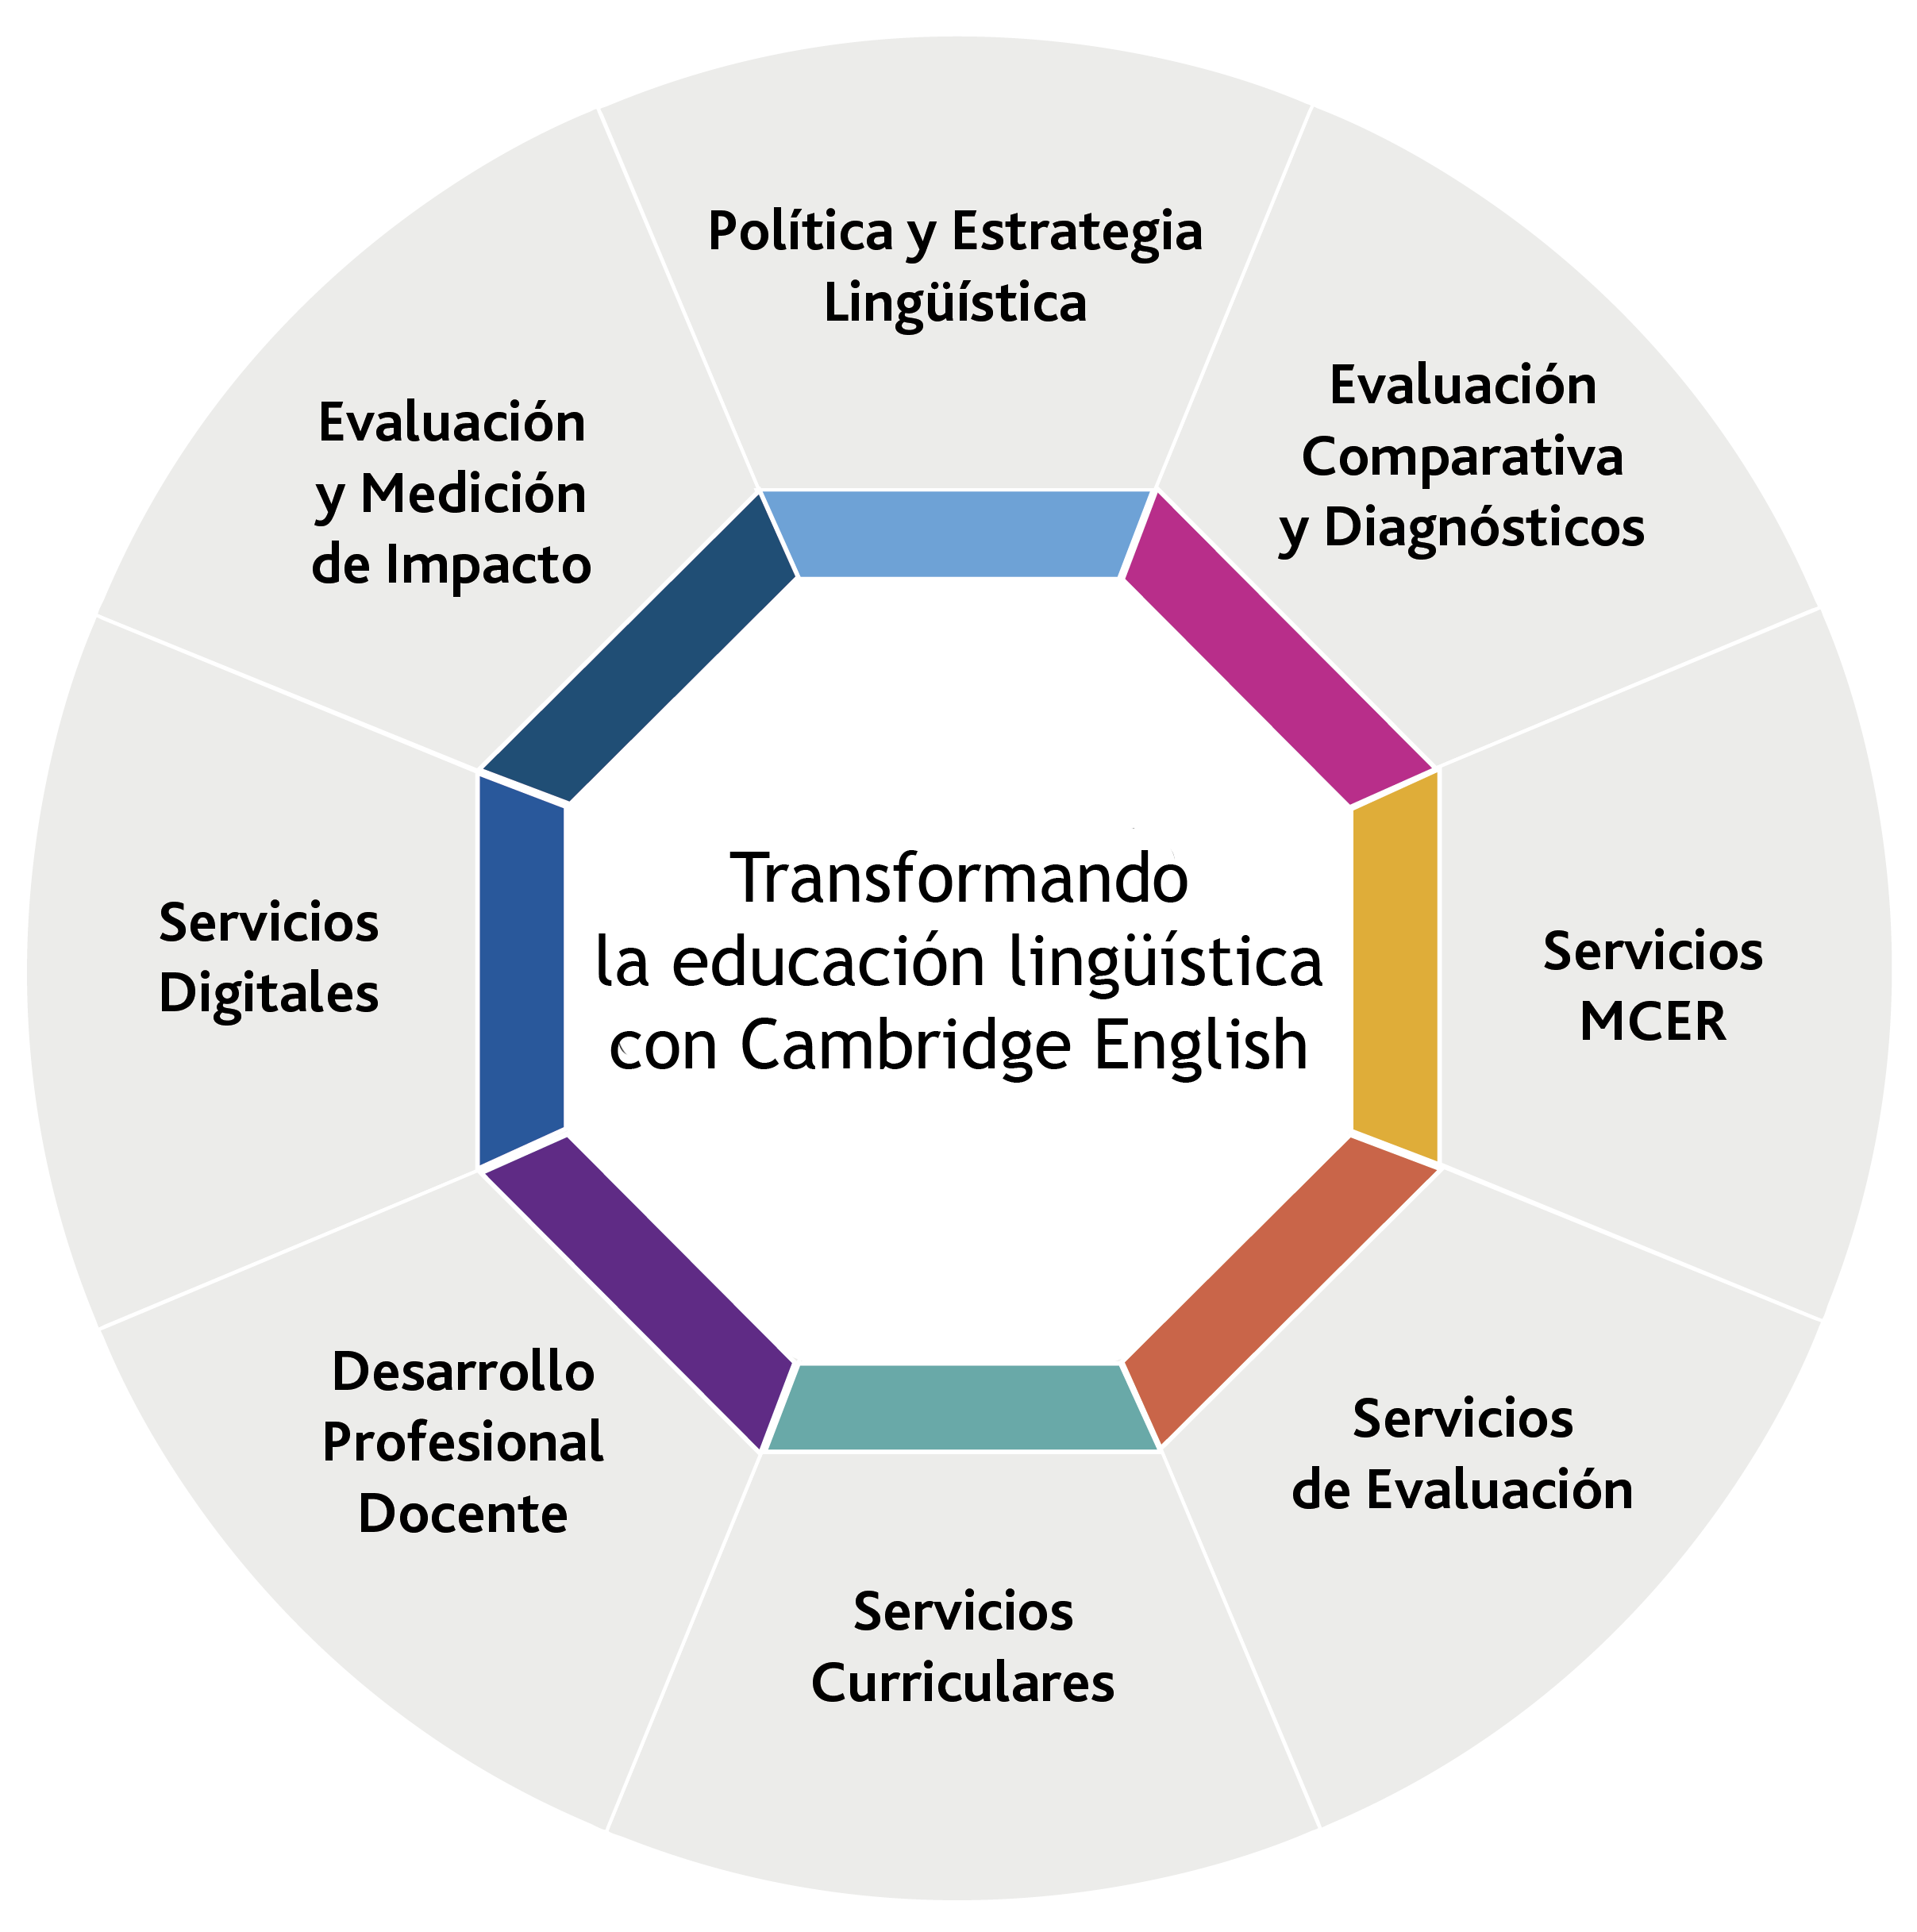 Consultancy wheel - image